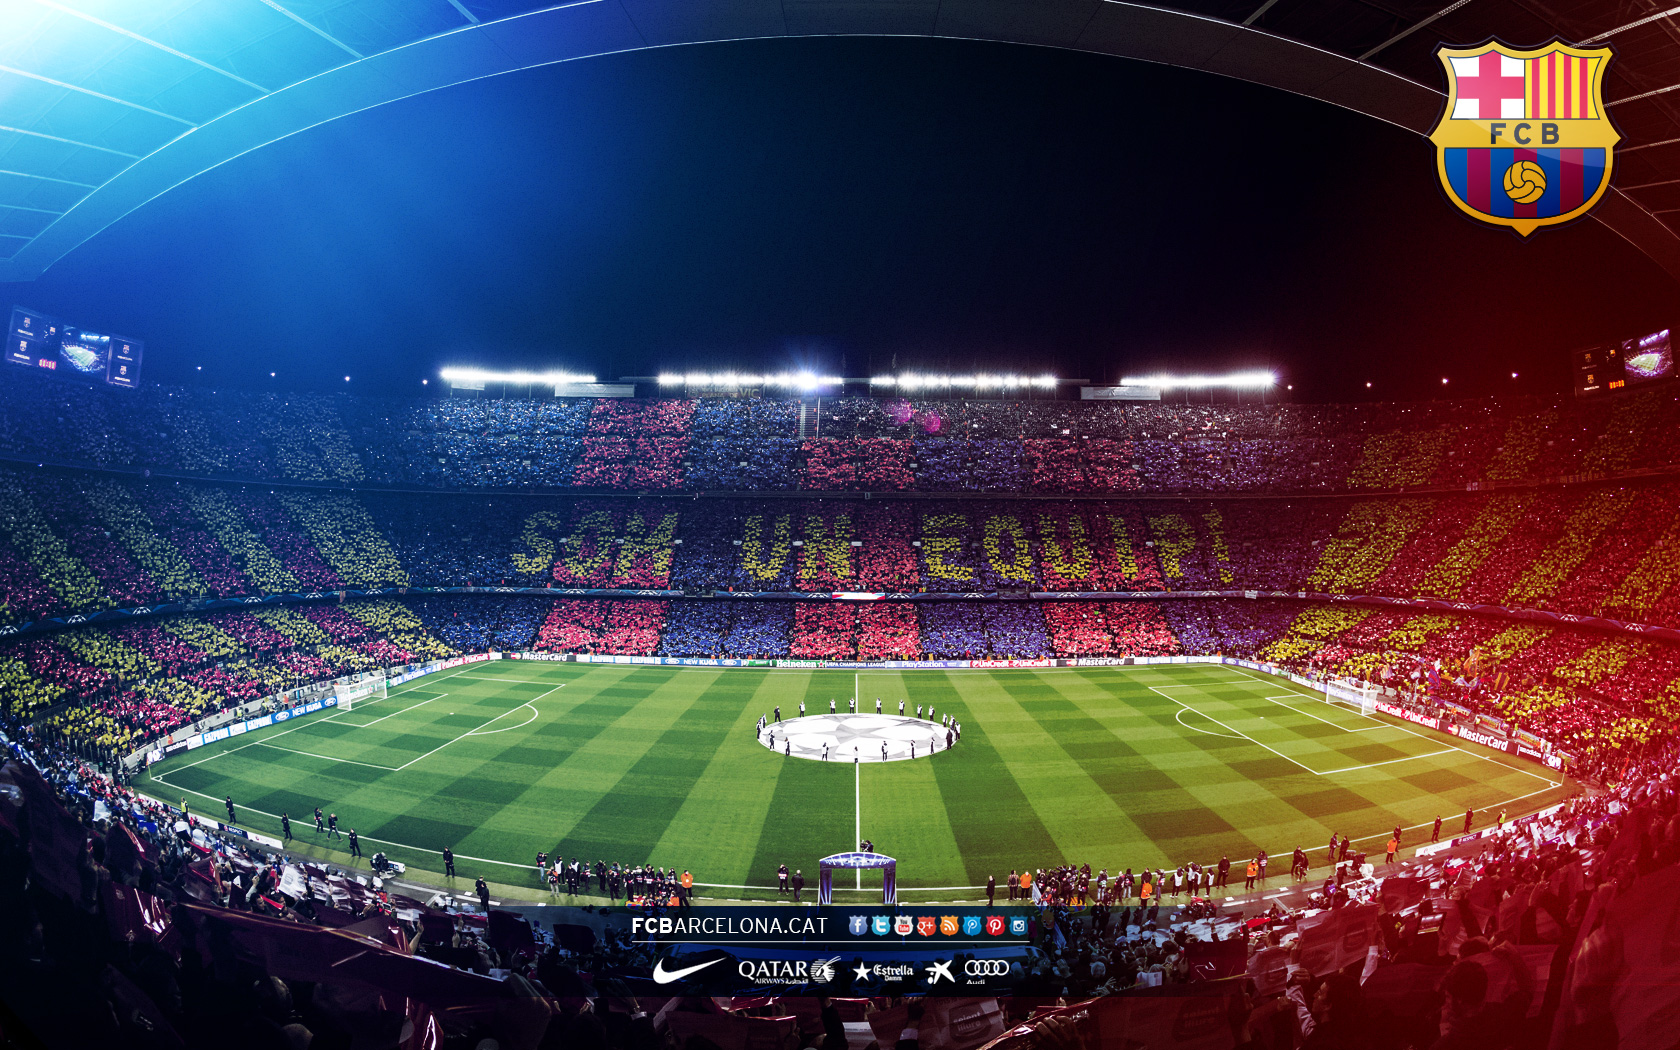 Fc Barcelona Wallpaper Barcelona Wallpapers Hd Pixelstalk Fc Barcelona Wallpaper Wallpaper Free Download 1680x1050